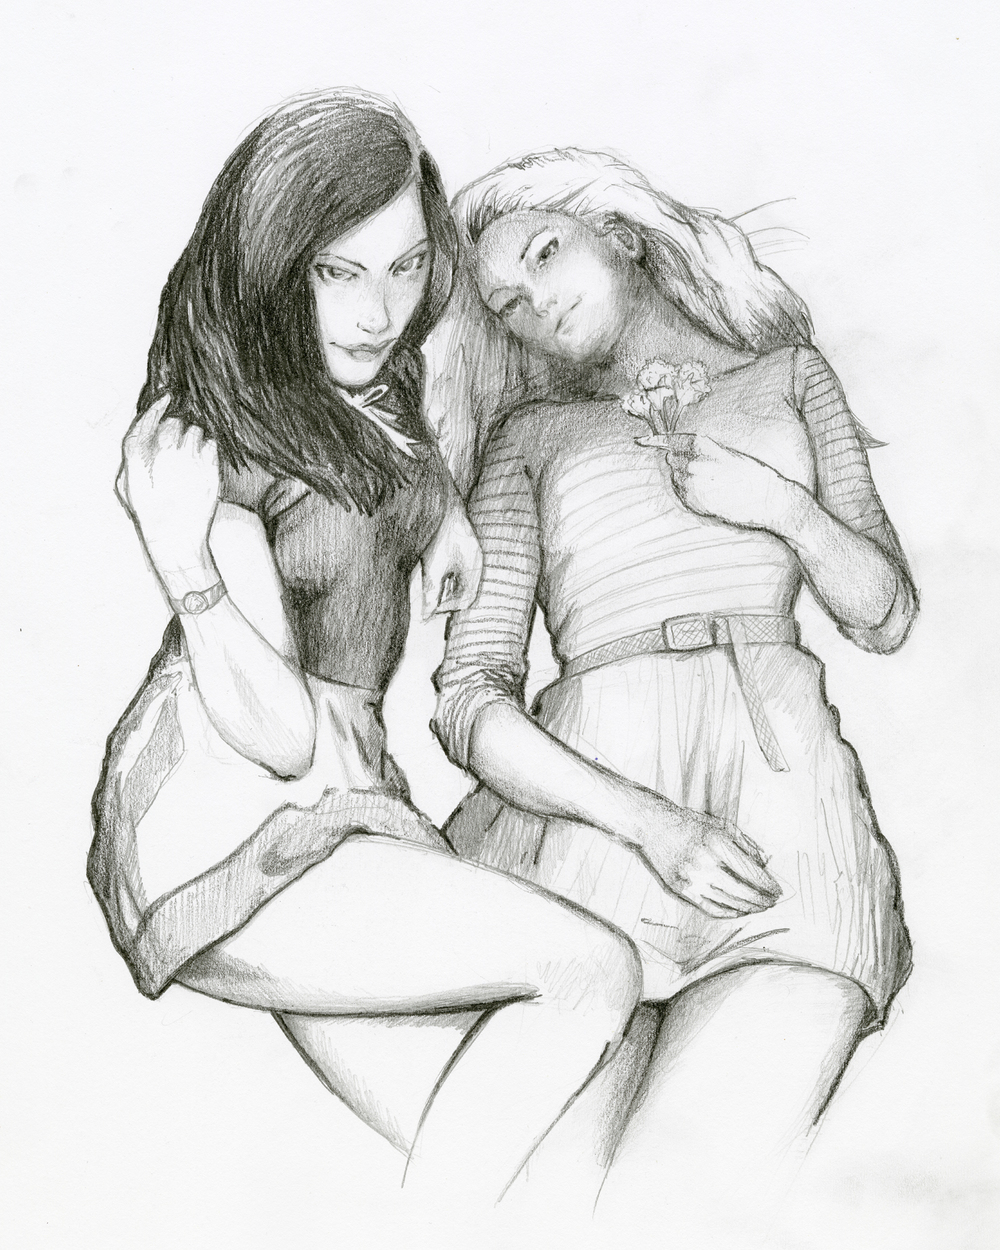 sketch-girls2_david-jackowski_alvatron-studio.jpg